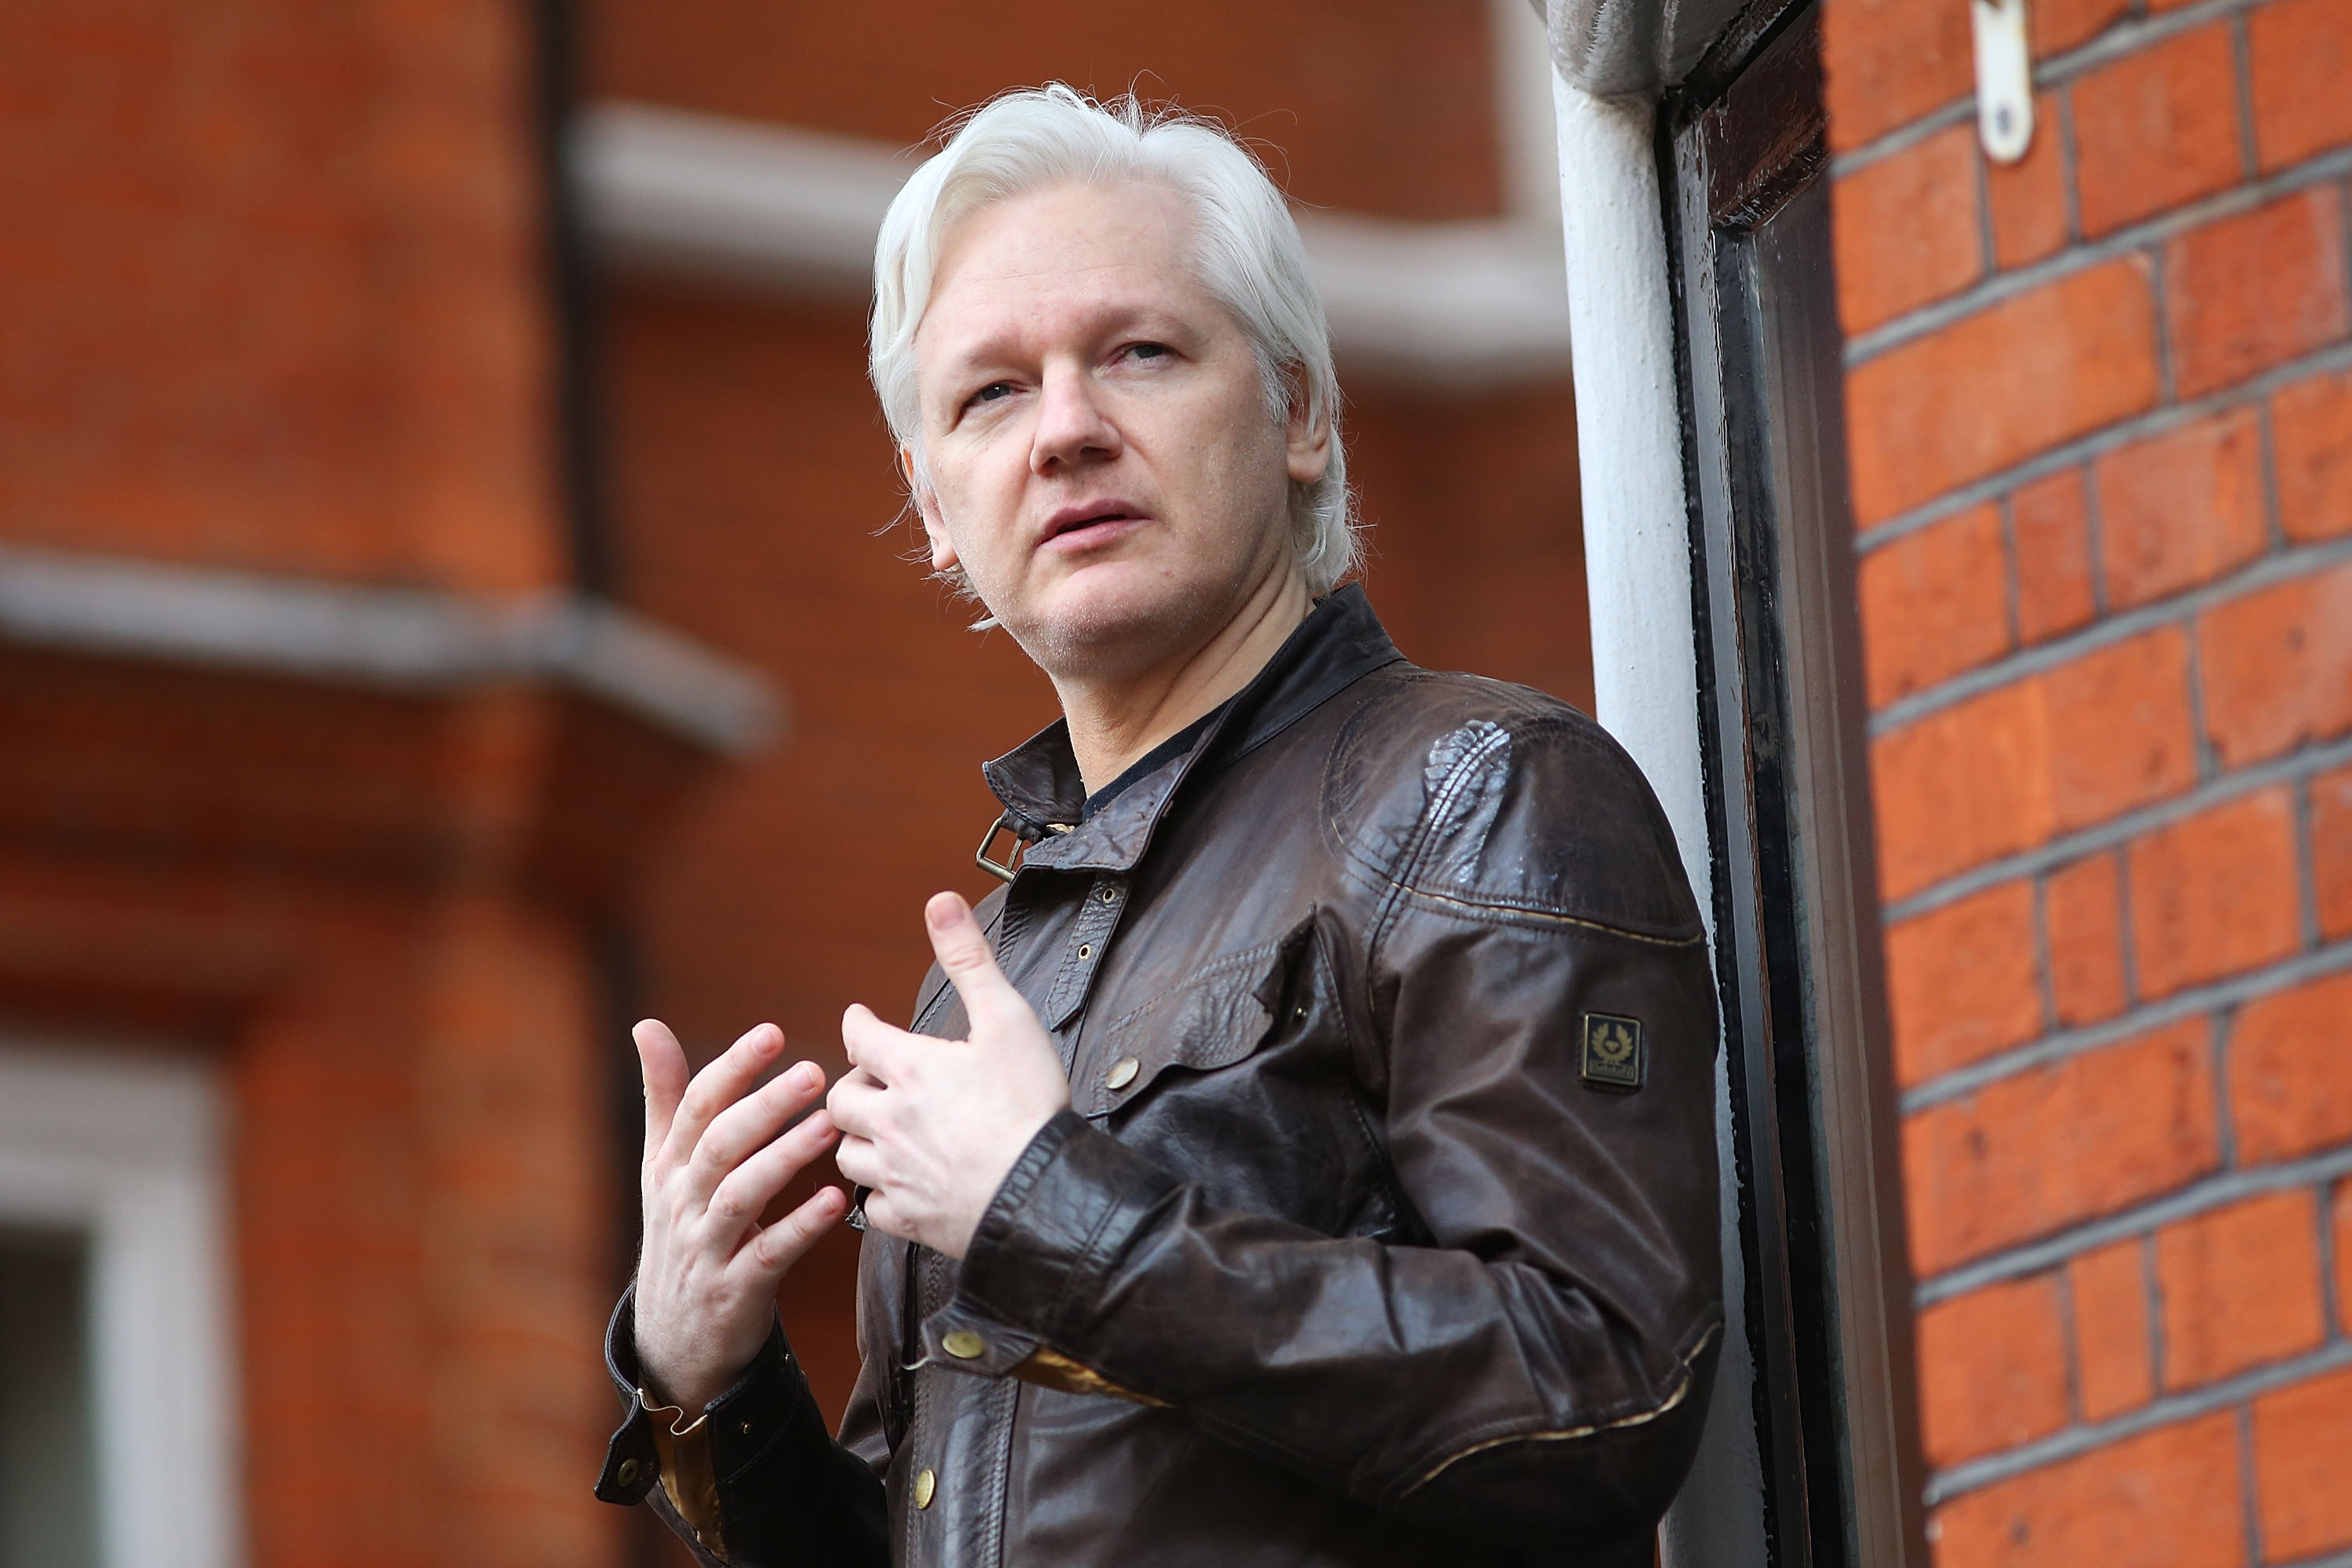 Sweden Has Dropped Its Investigation Into The Julian Assange Rape Case